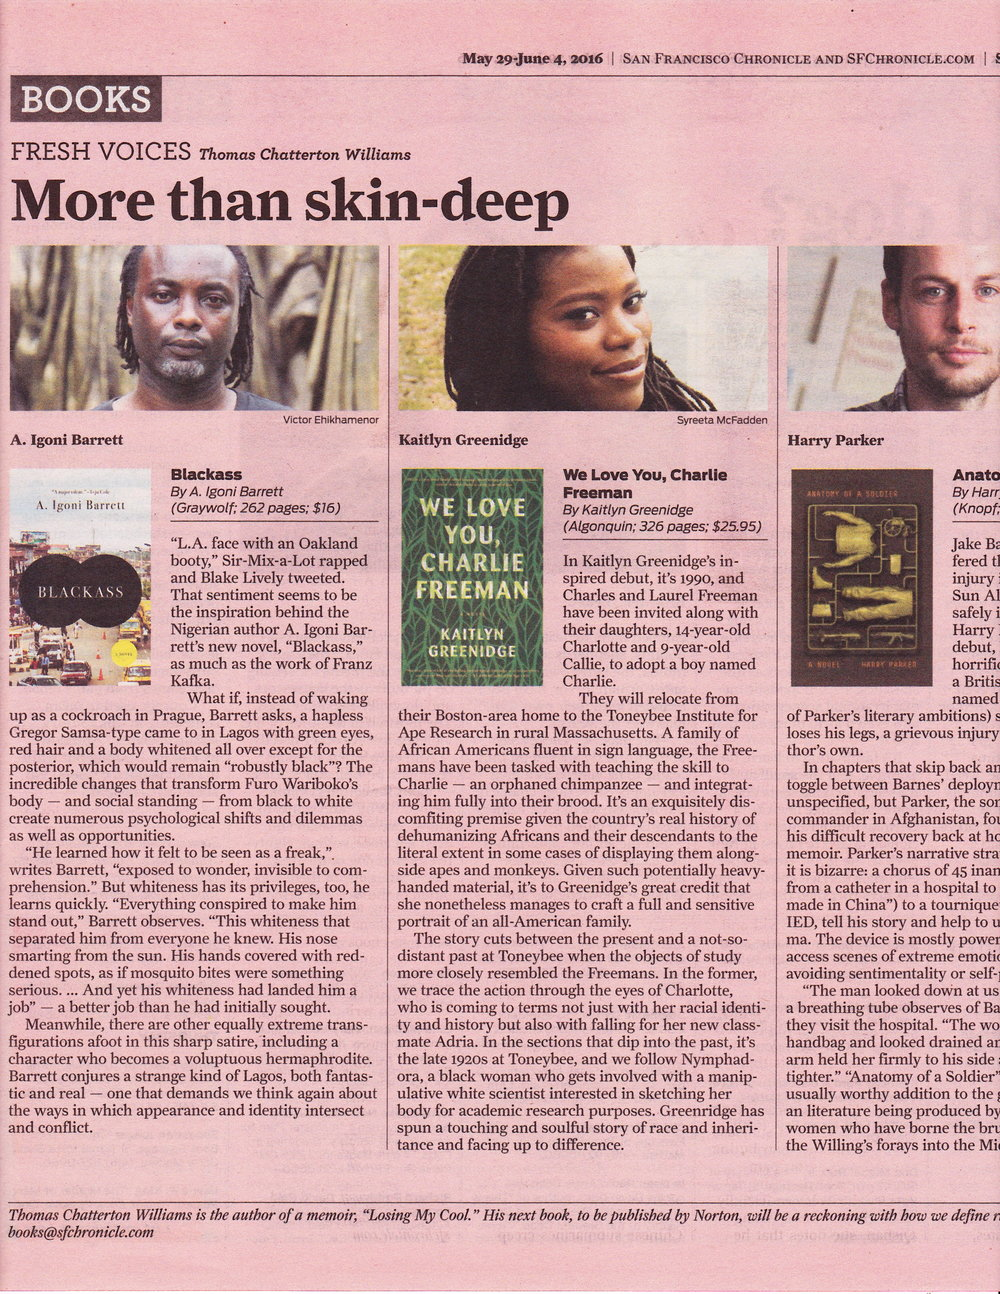 a great piece about blackass in the san francisco chronicle.